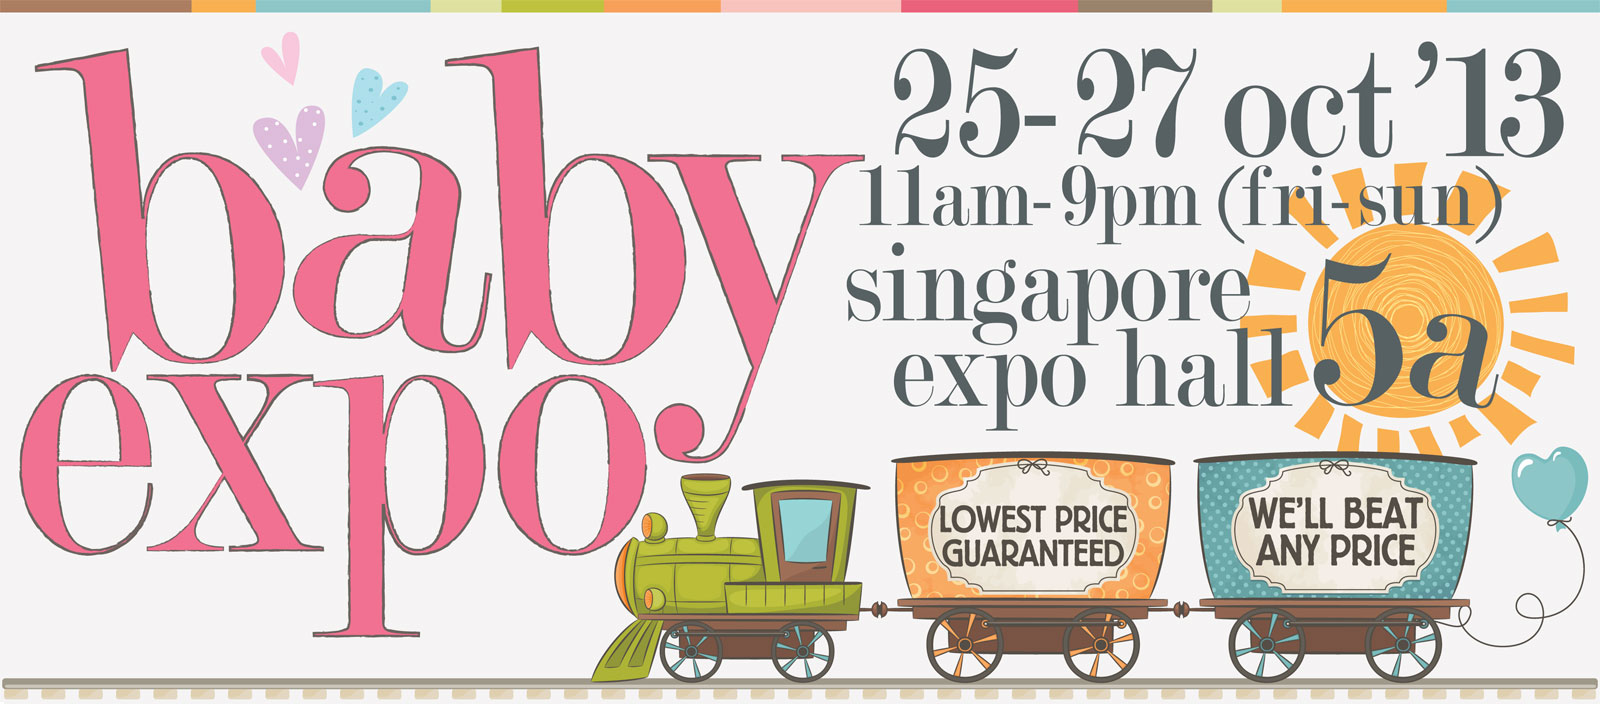 Baby Expo 2013: Lowest Price Guaranteed For Your Pregnancy, Baby & Toddler Products